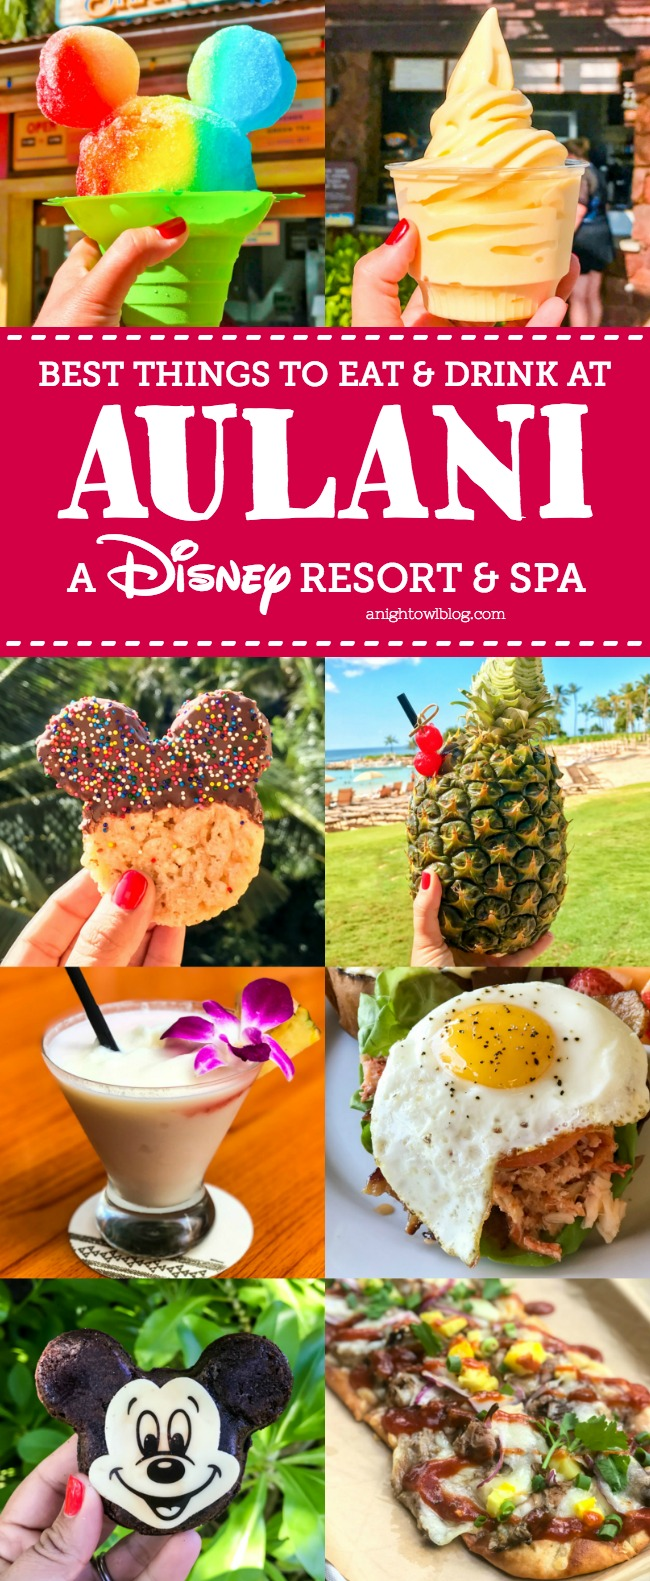 From Mickey Shaped Treats to fresh Poke Bowls, discover The Best Things to Eat and Drink at Aulani - A Disney Resort & Spa.